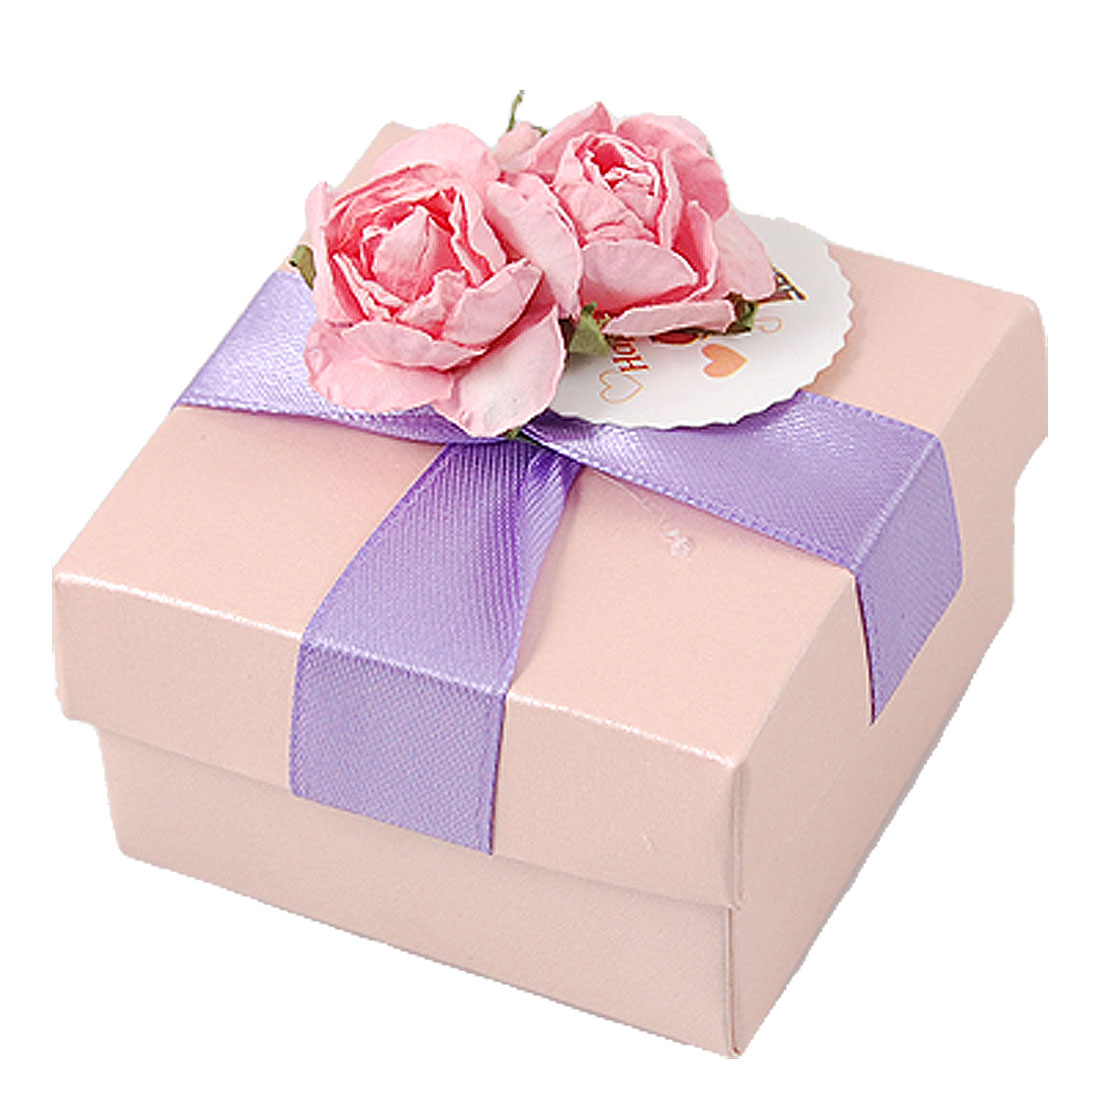 Flower Embellished Square Shaped Paper Gift Present Box Pink